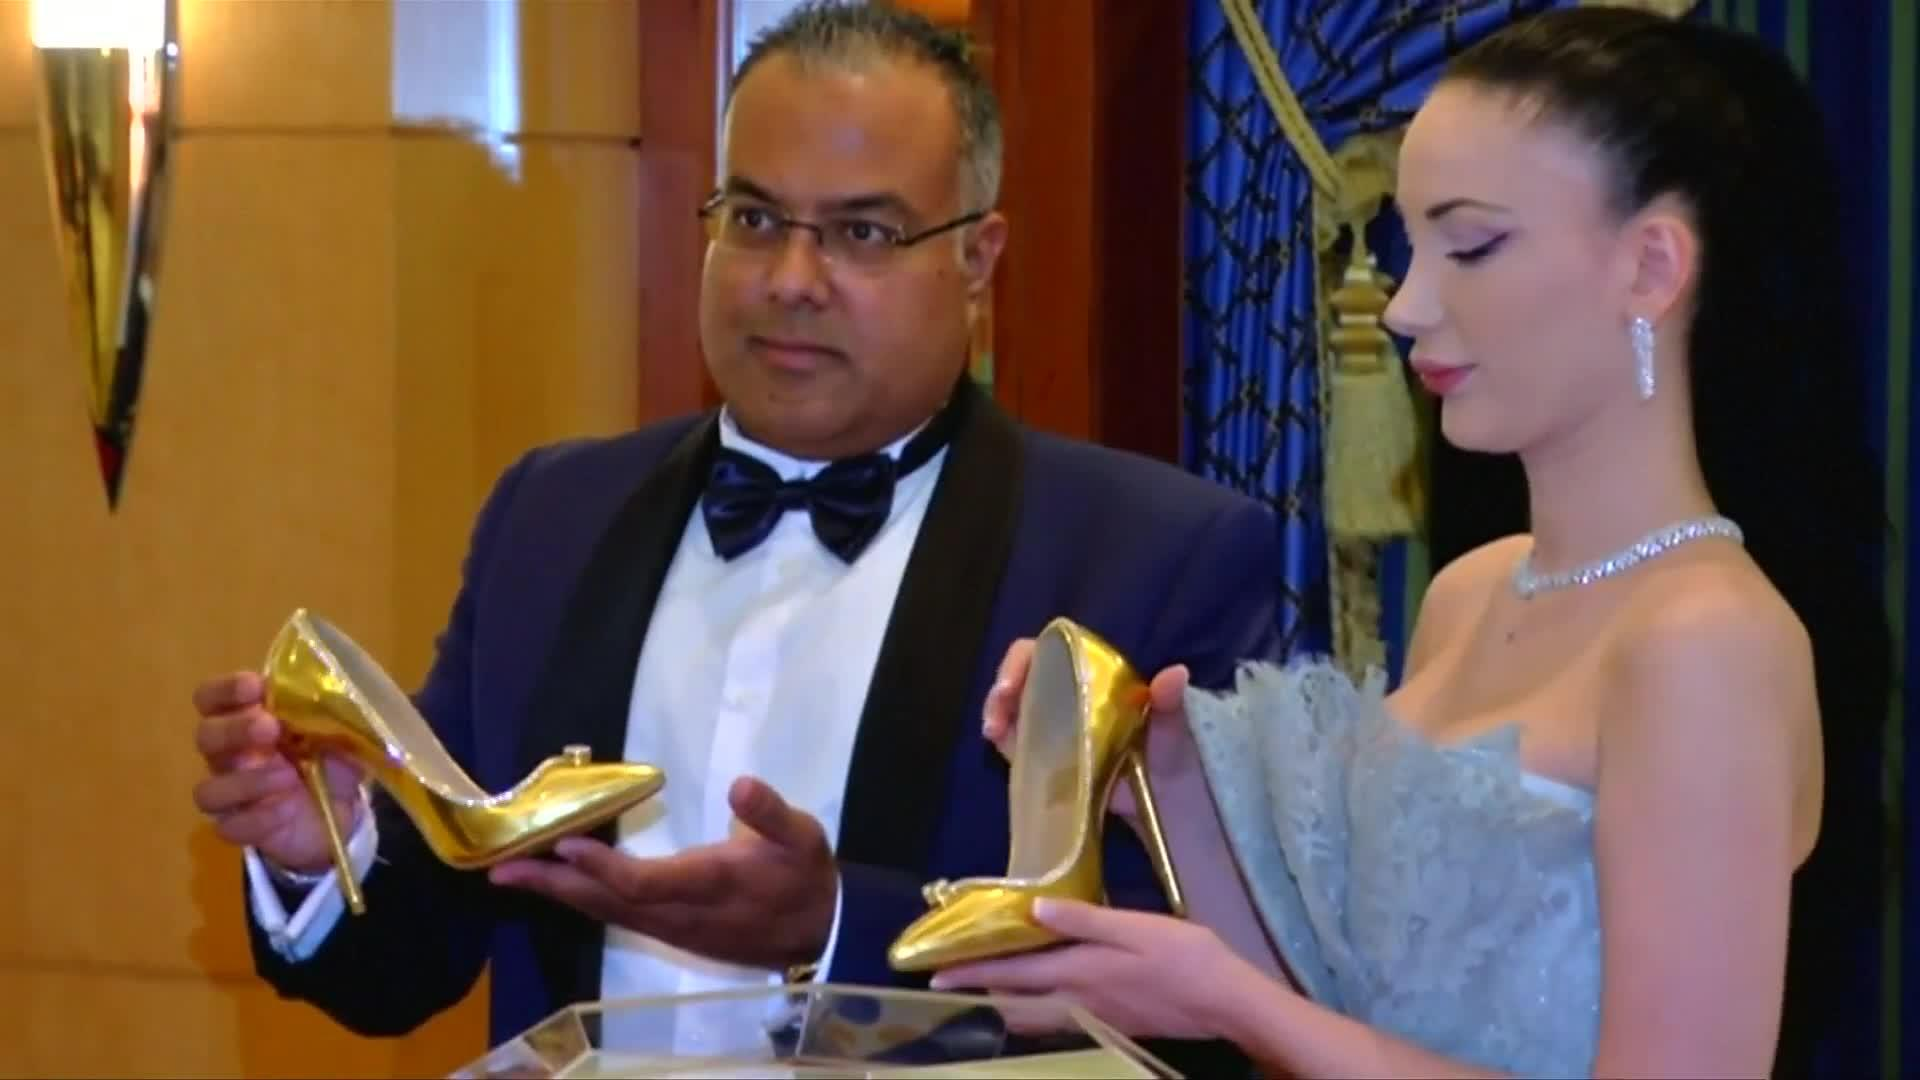 Pair Of Shoes Cost $17 Million